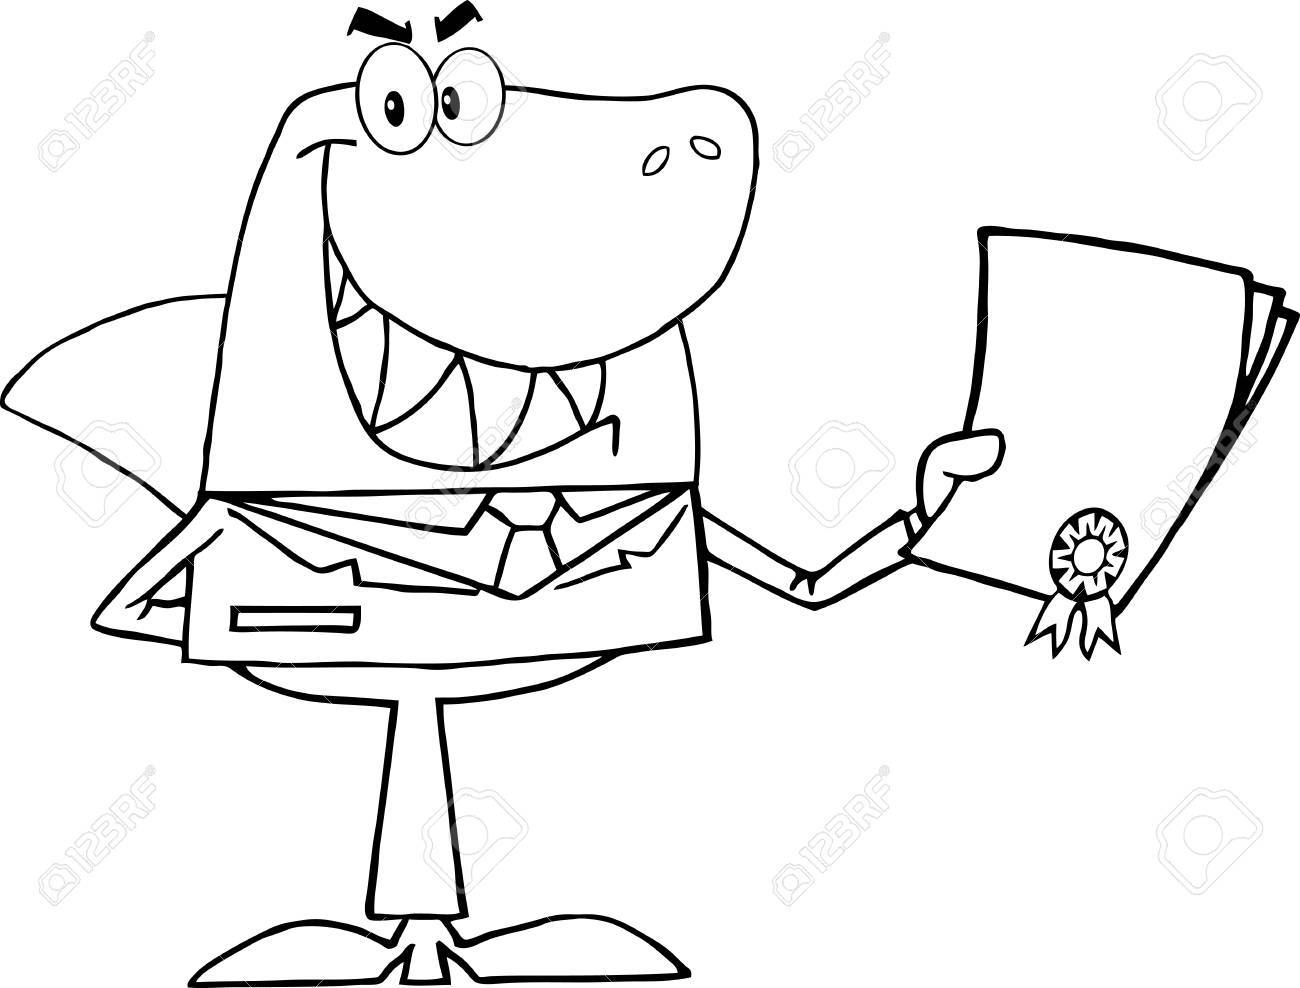 Outlined Shark Businessman Holding A Bad Contract In His Hand Stock Vector - 10748934